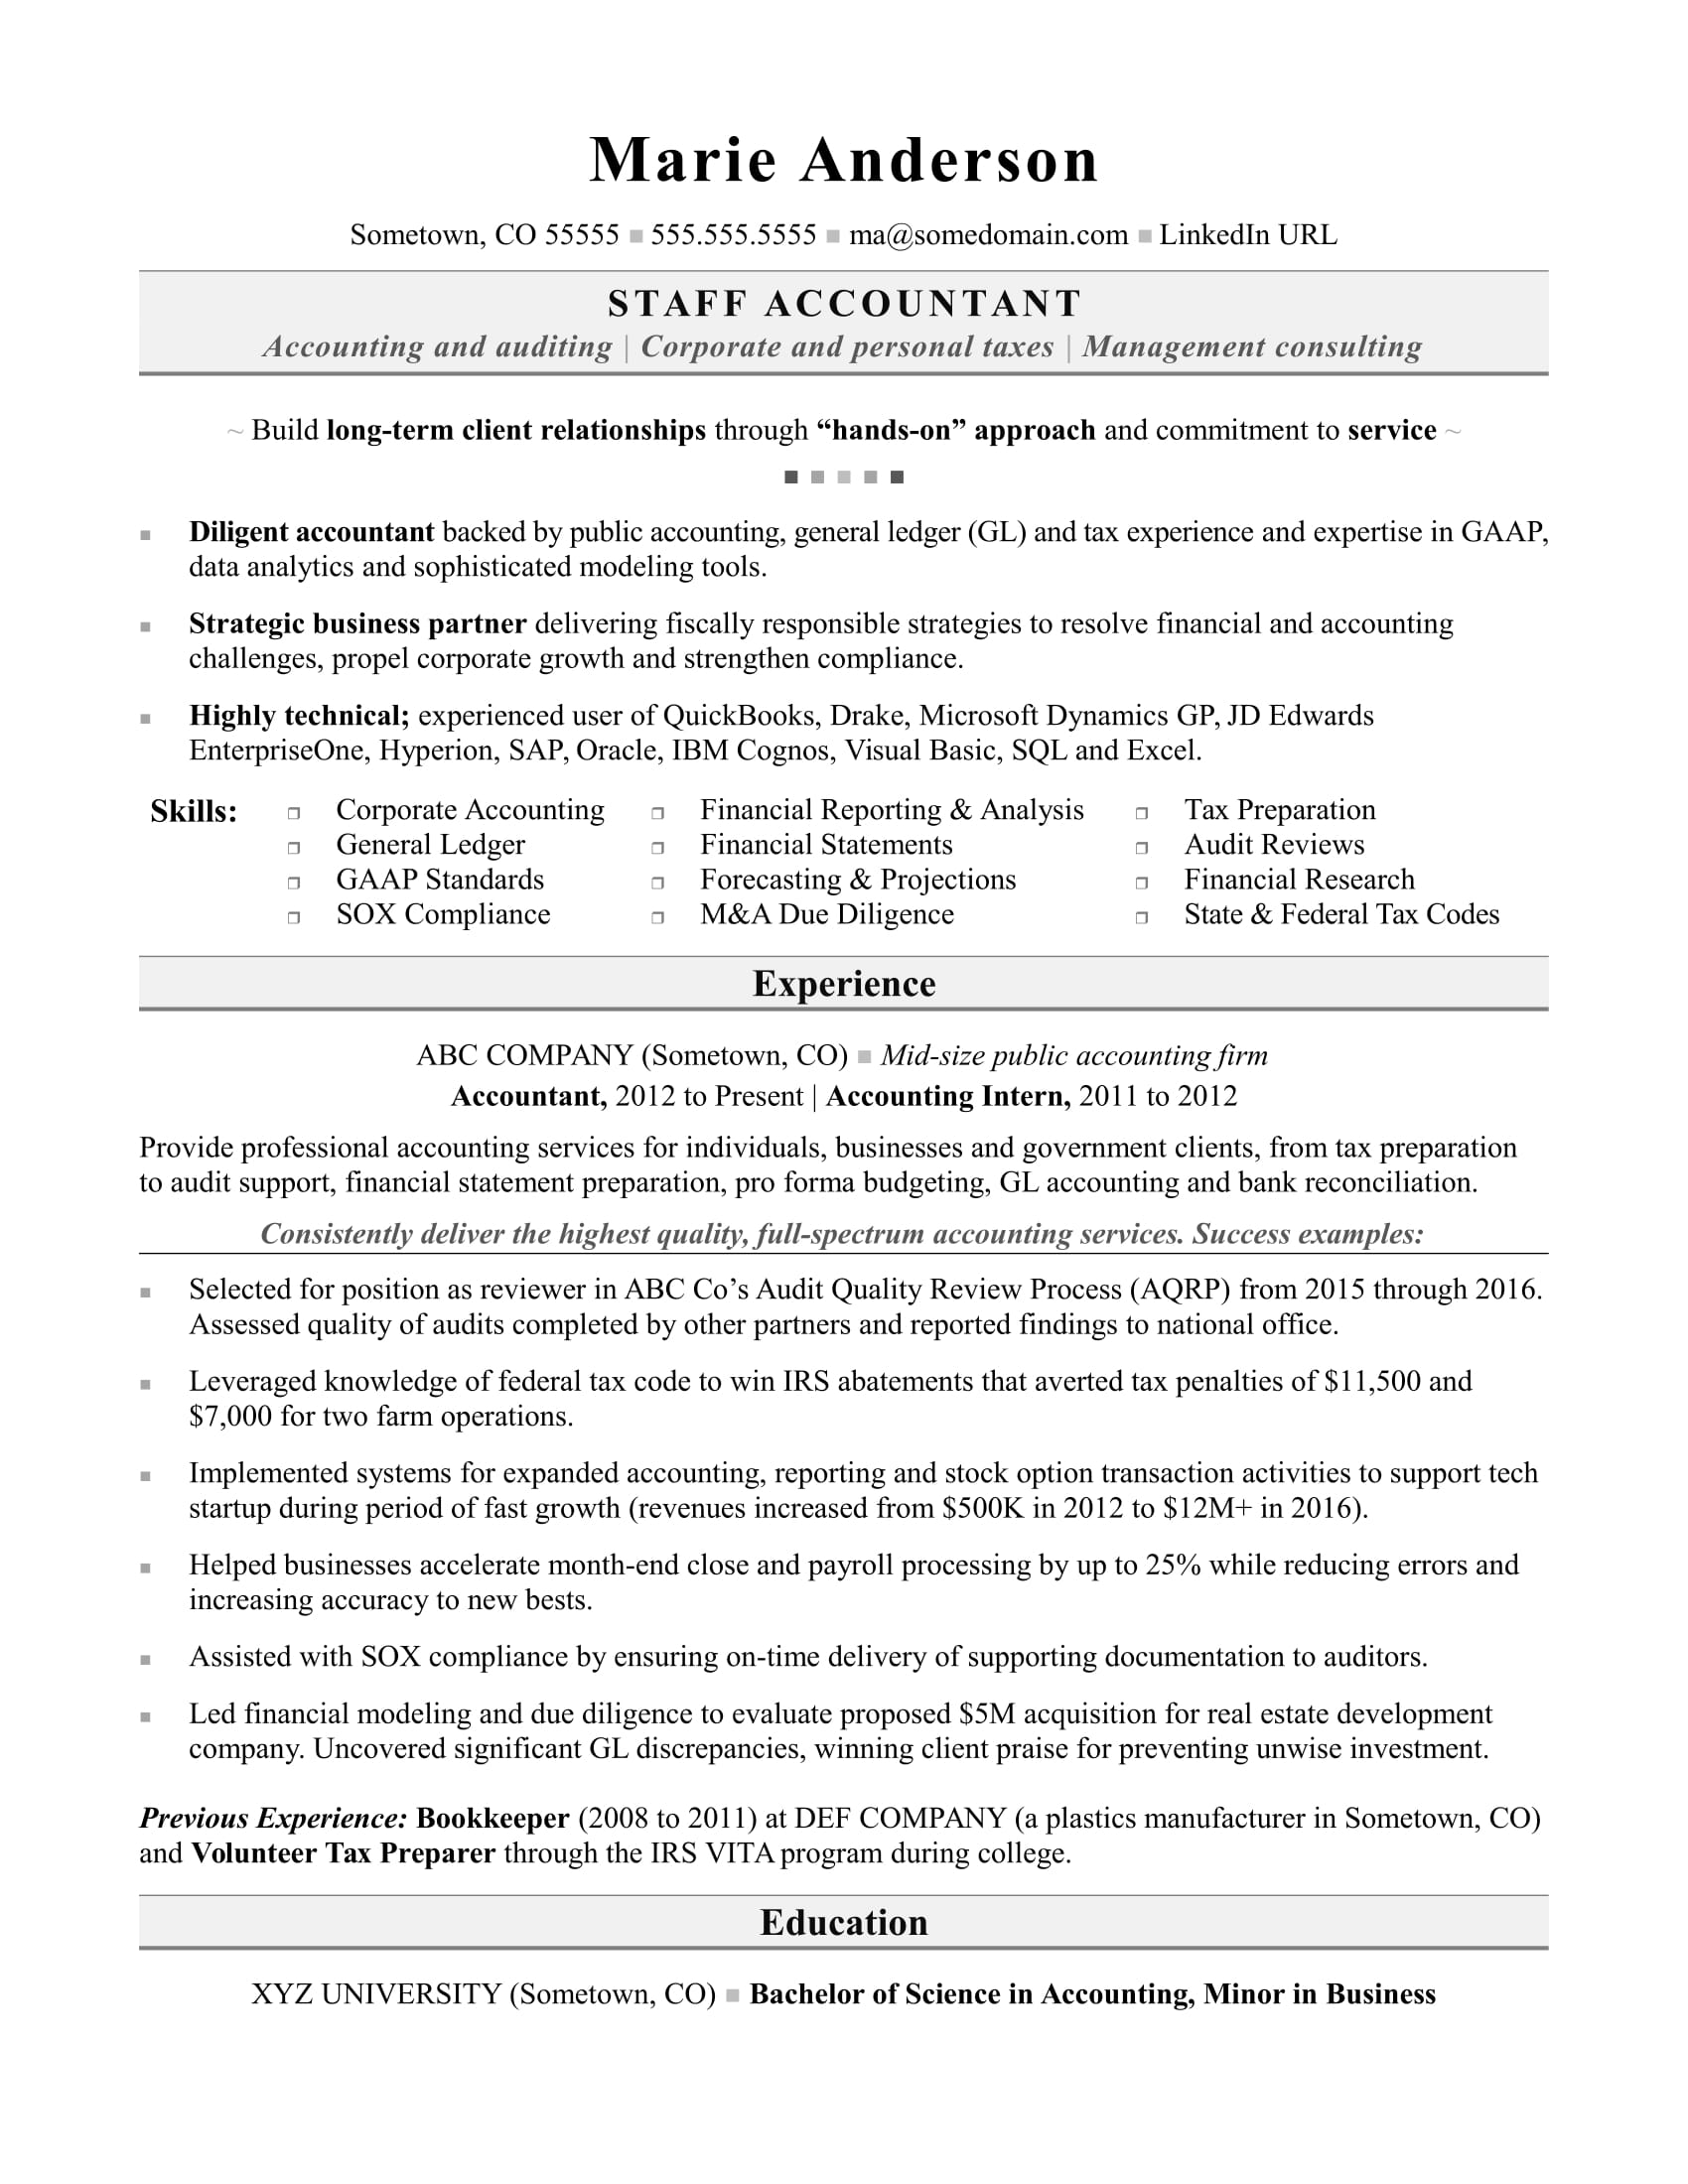 sample resume for applying ms in us - accounting resume sample